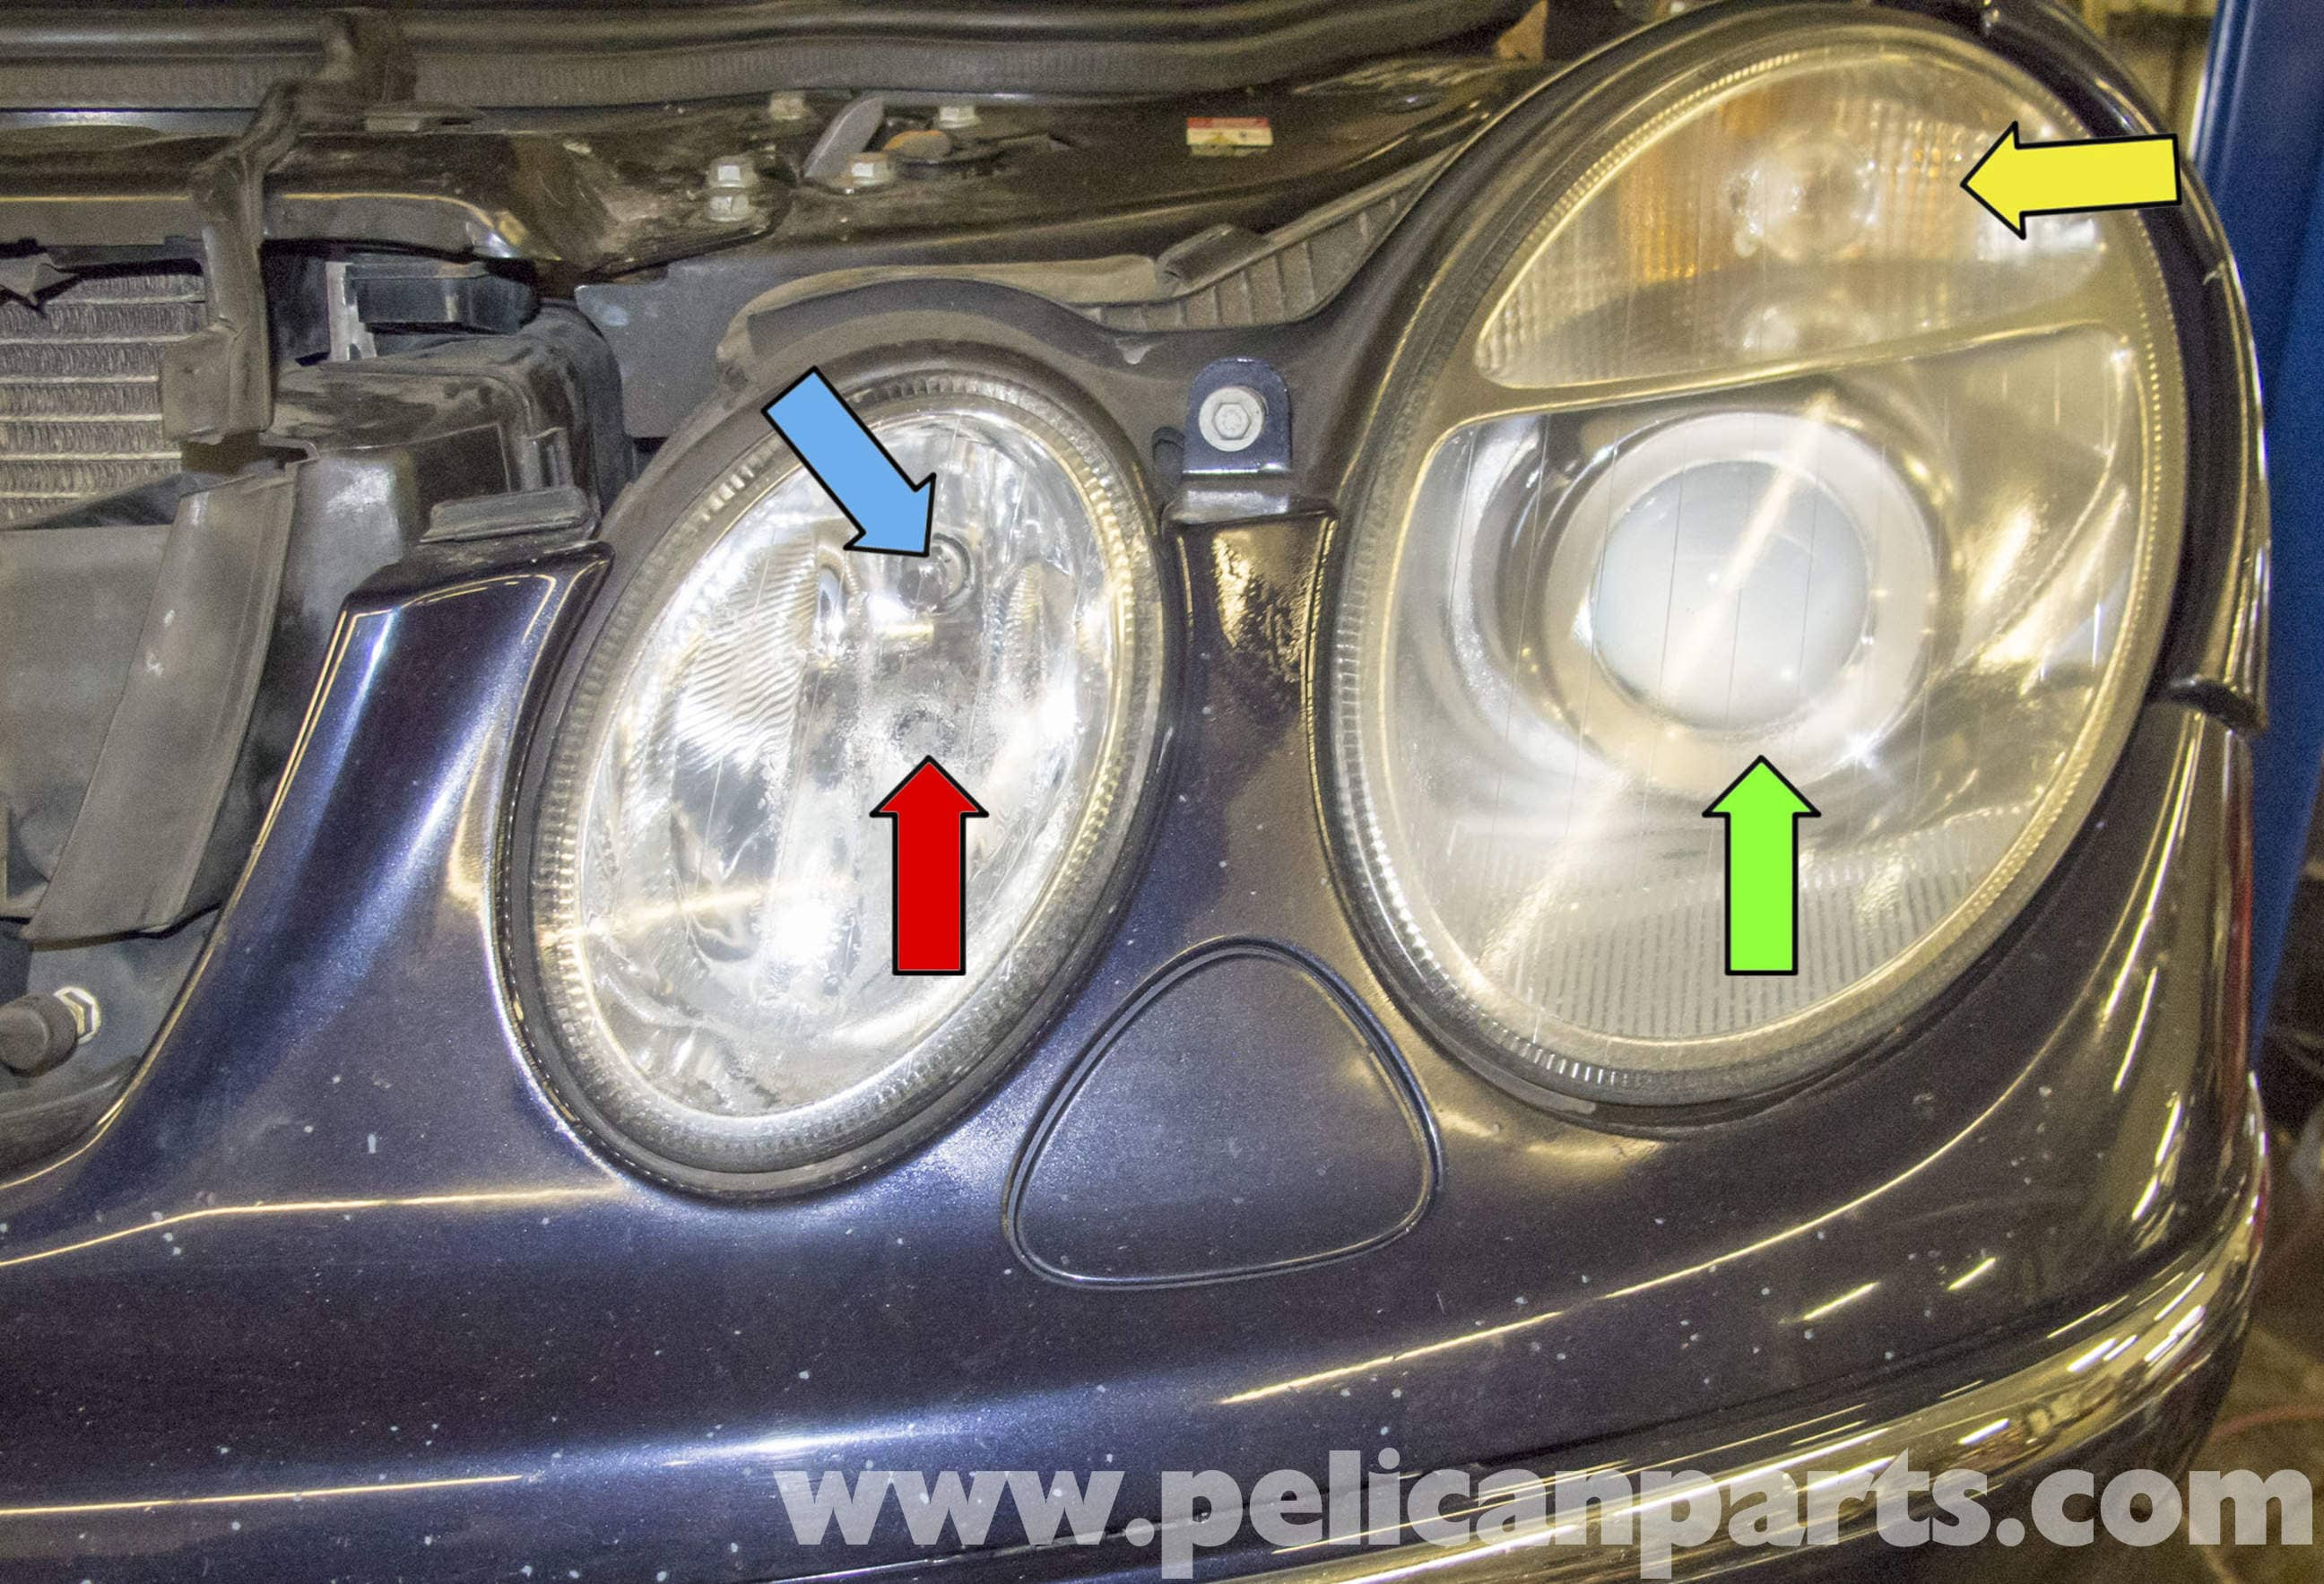 Mercedes benz w211 headlight replacement 2003 2009 e320 for Mercedes benz headlight bulb